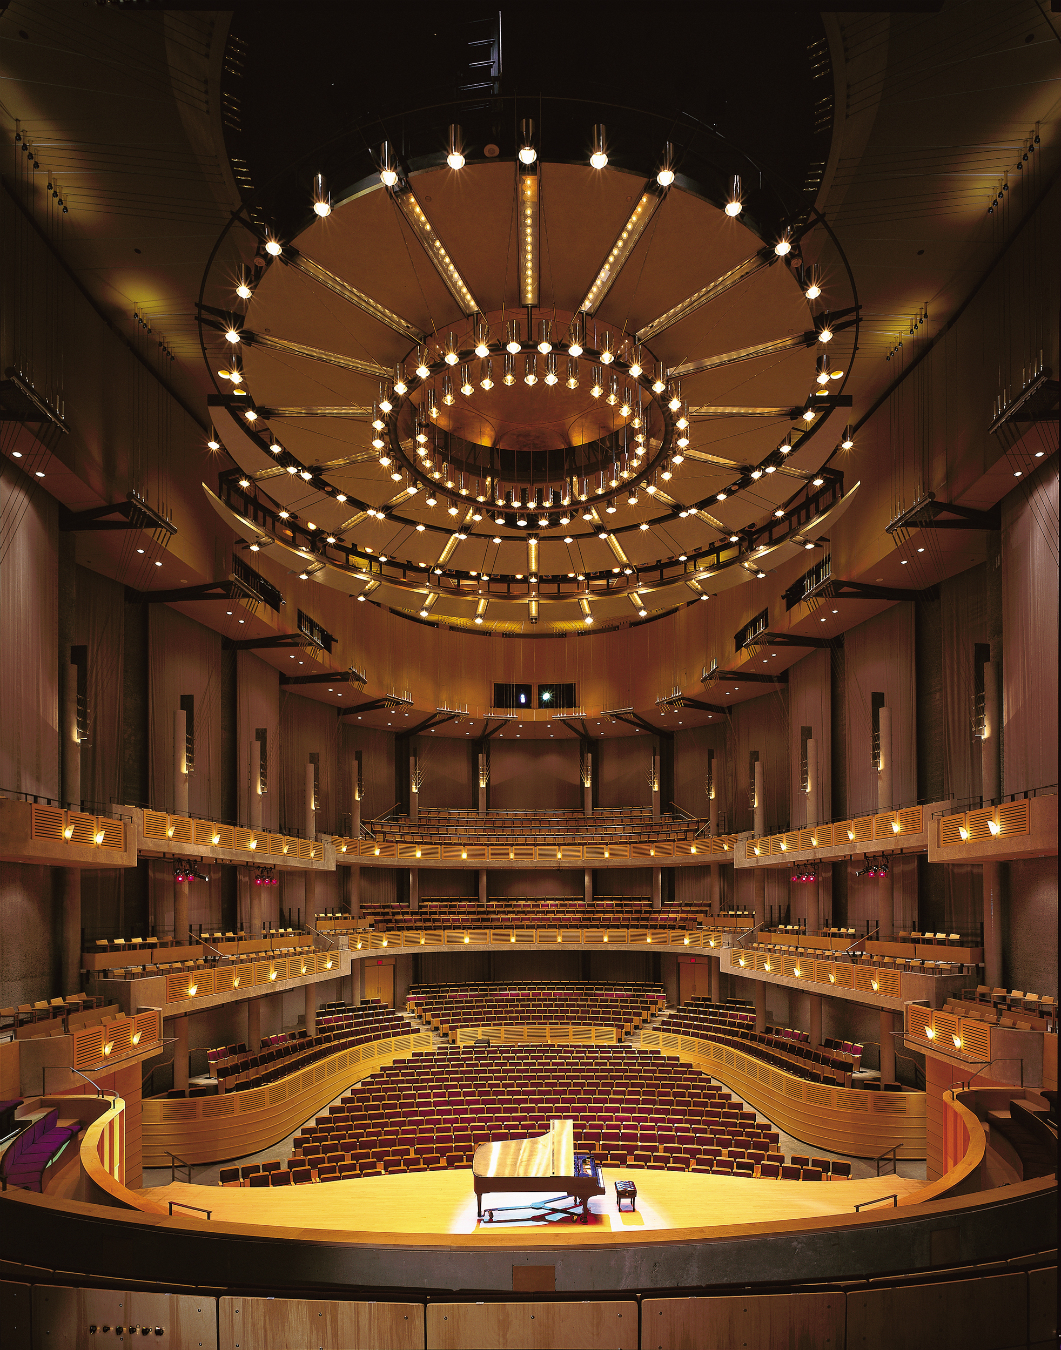 Bing Thom architecture. Chan Centre for the Performing Arts